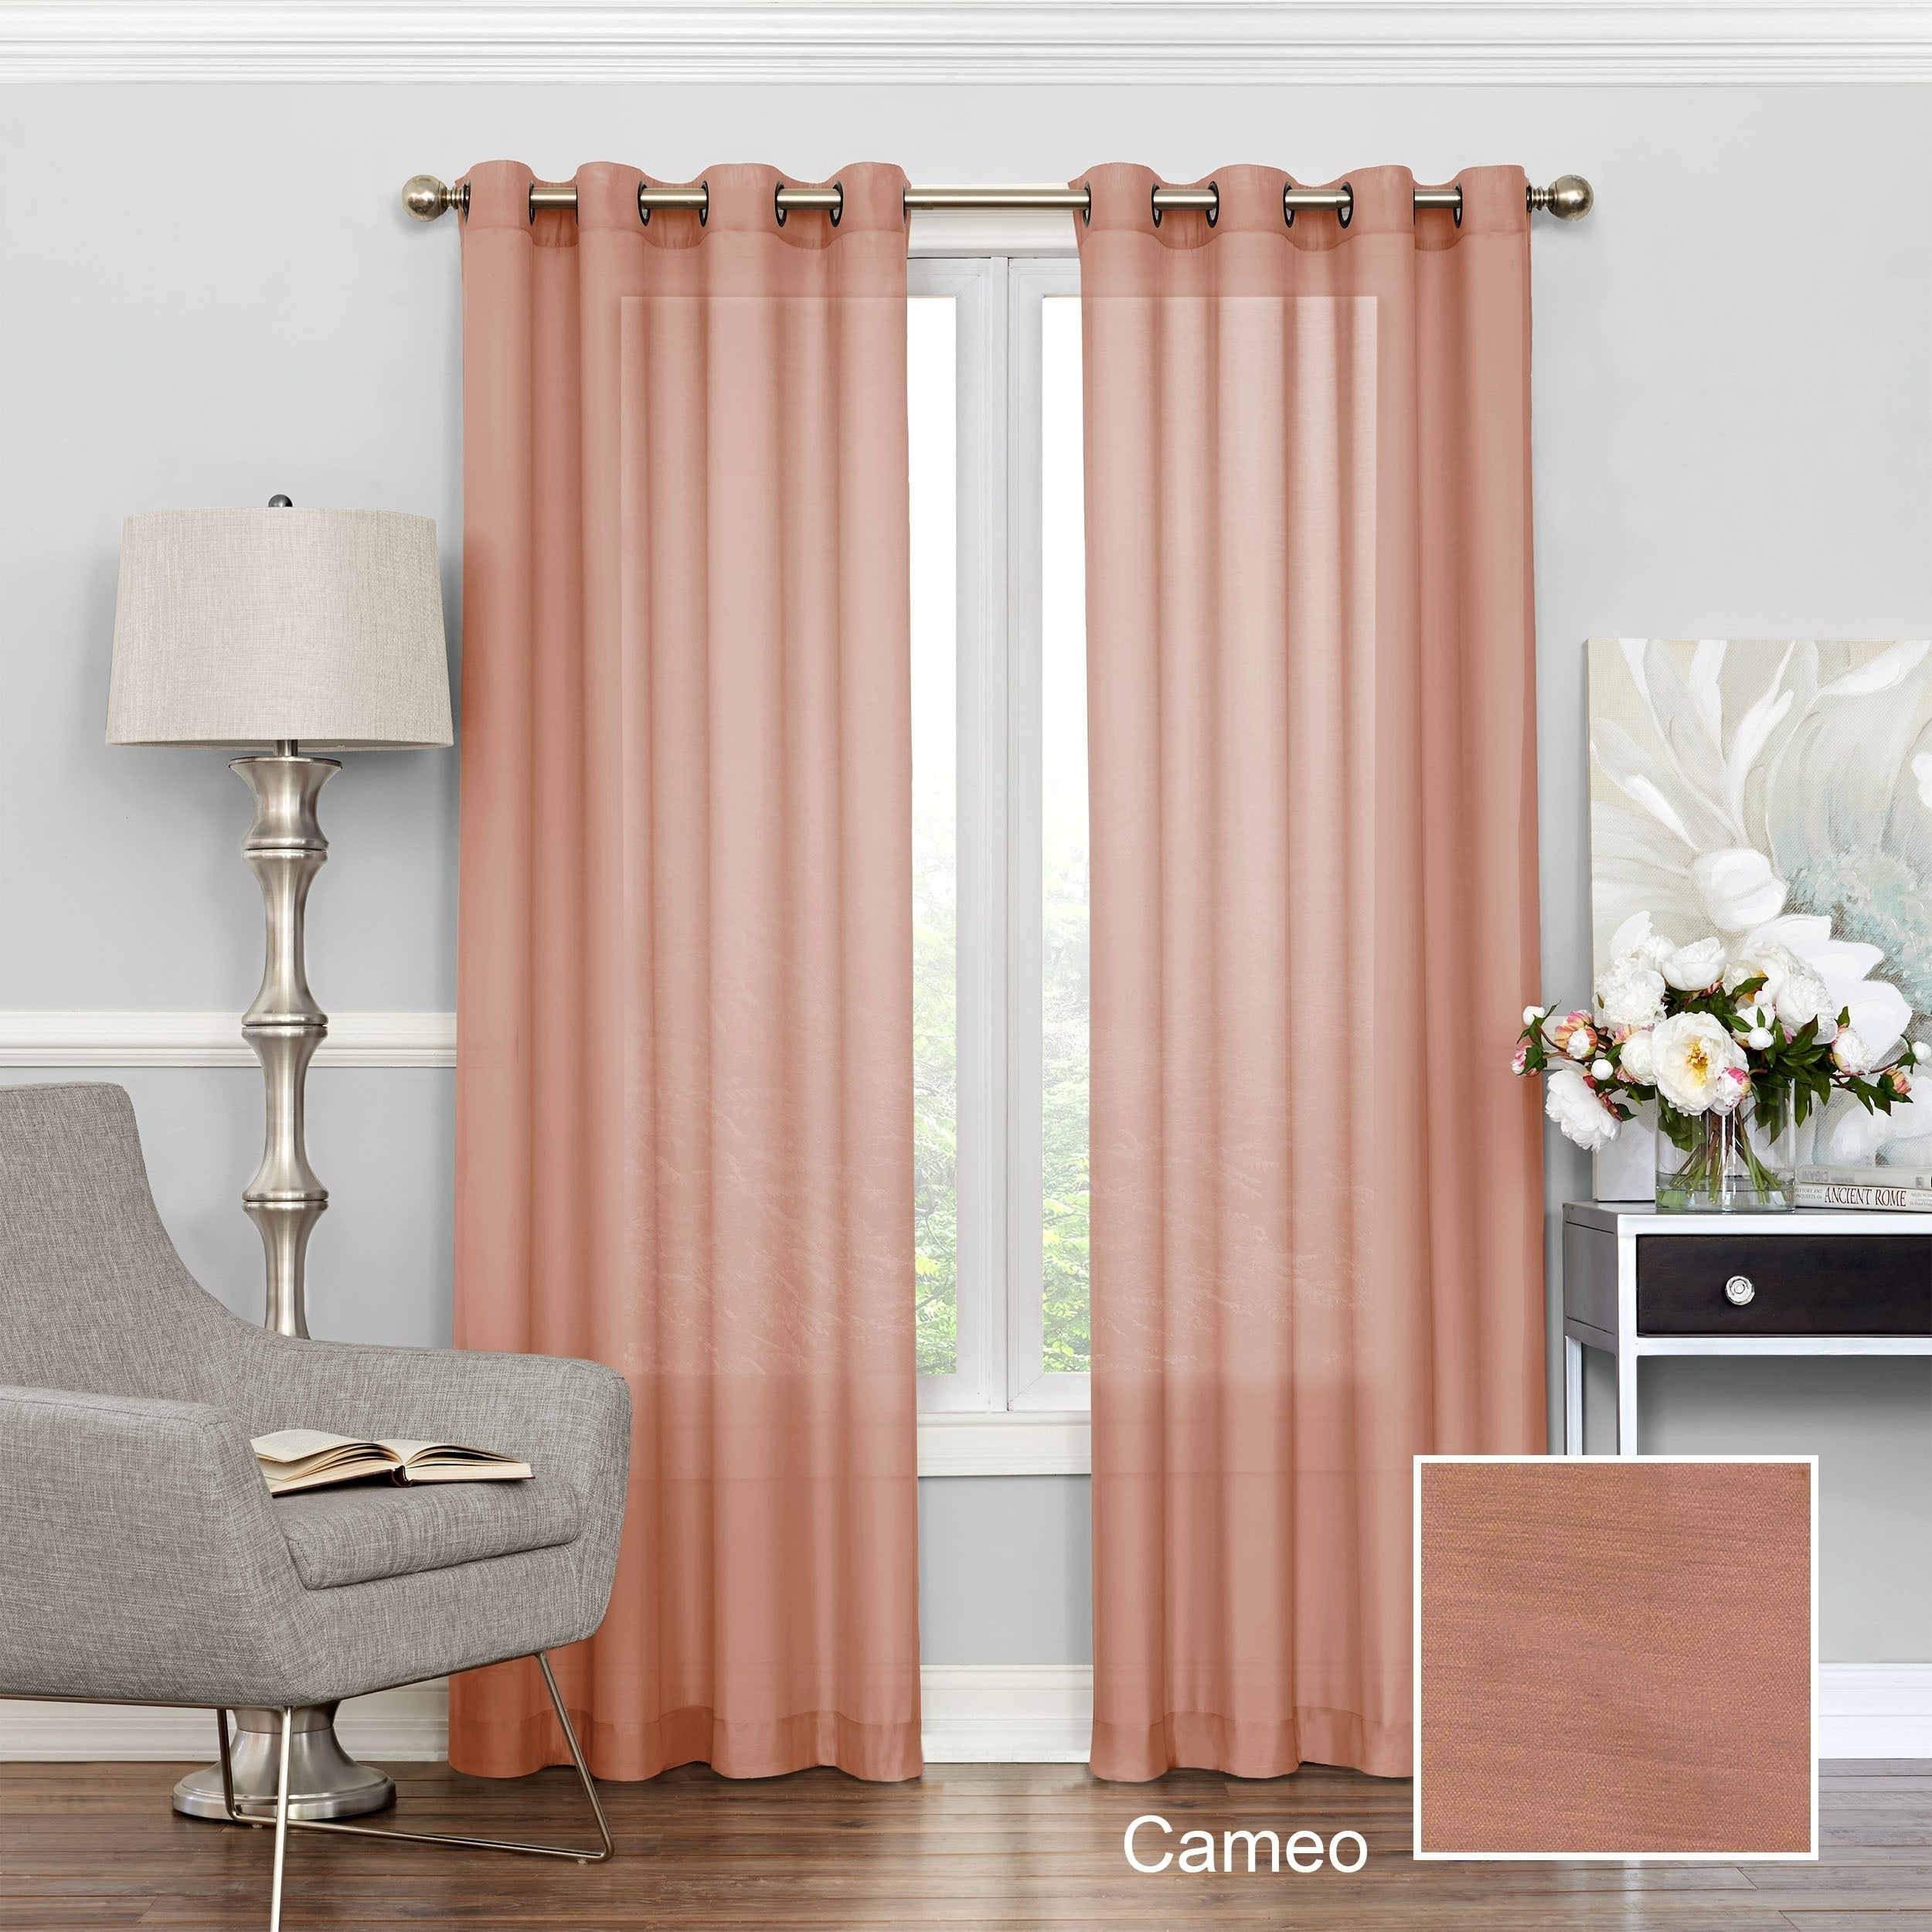 Eclipse Liberty Light Filtering Sheer Curtain Throughout Luxury Collection Cranston Sheer Curtain Panel Pairs (View 7 of 20)